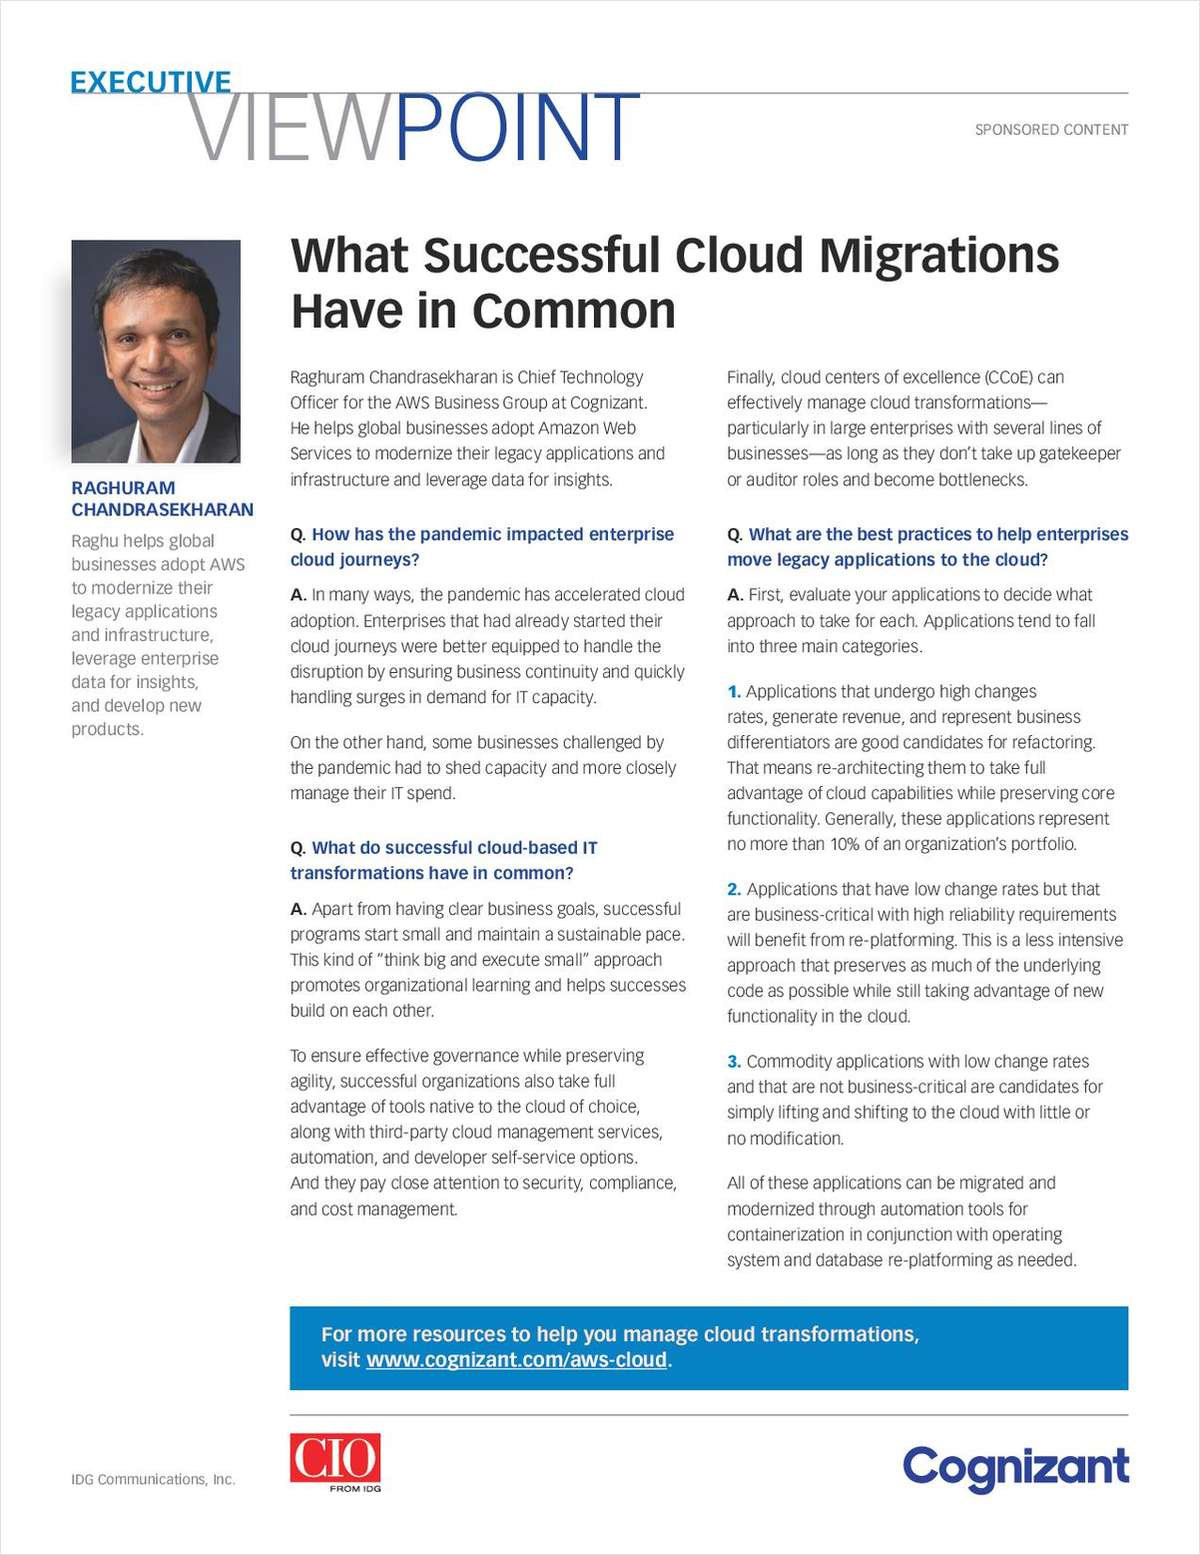 What Successful Cloud Migrations Have in Common